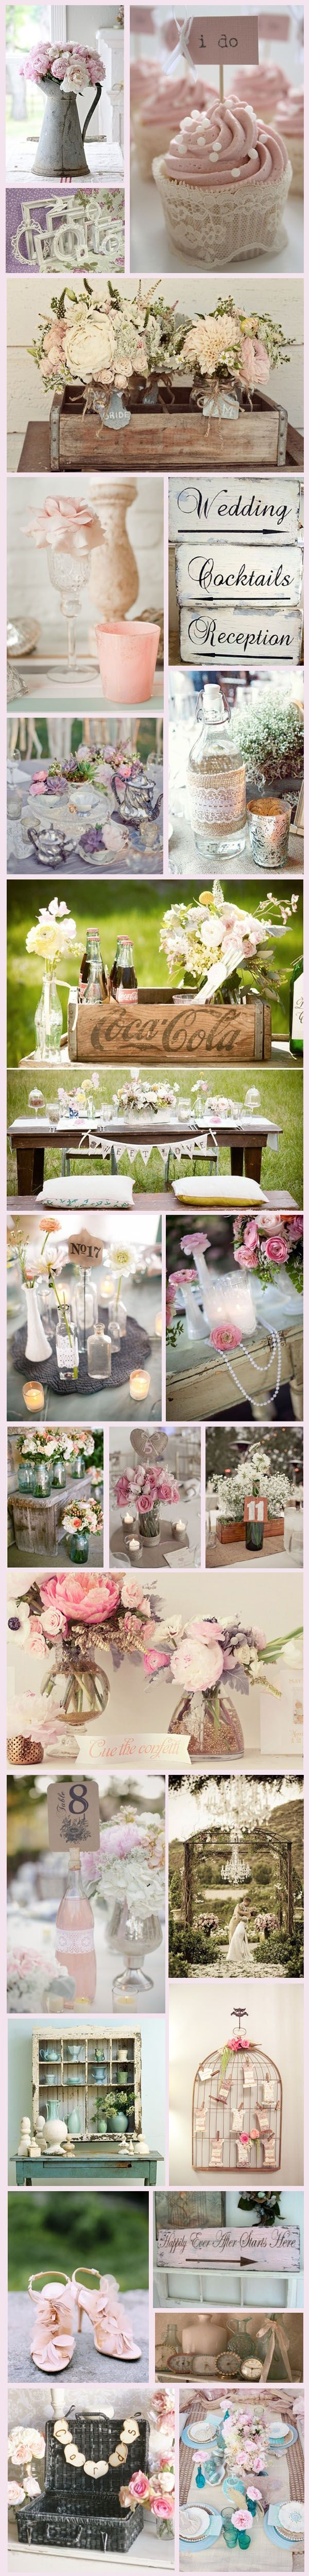 {Wedding Wednesday} Vintage Theme Ideas